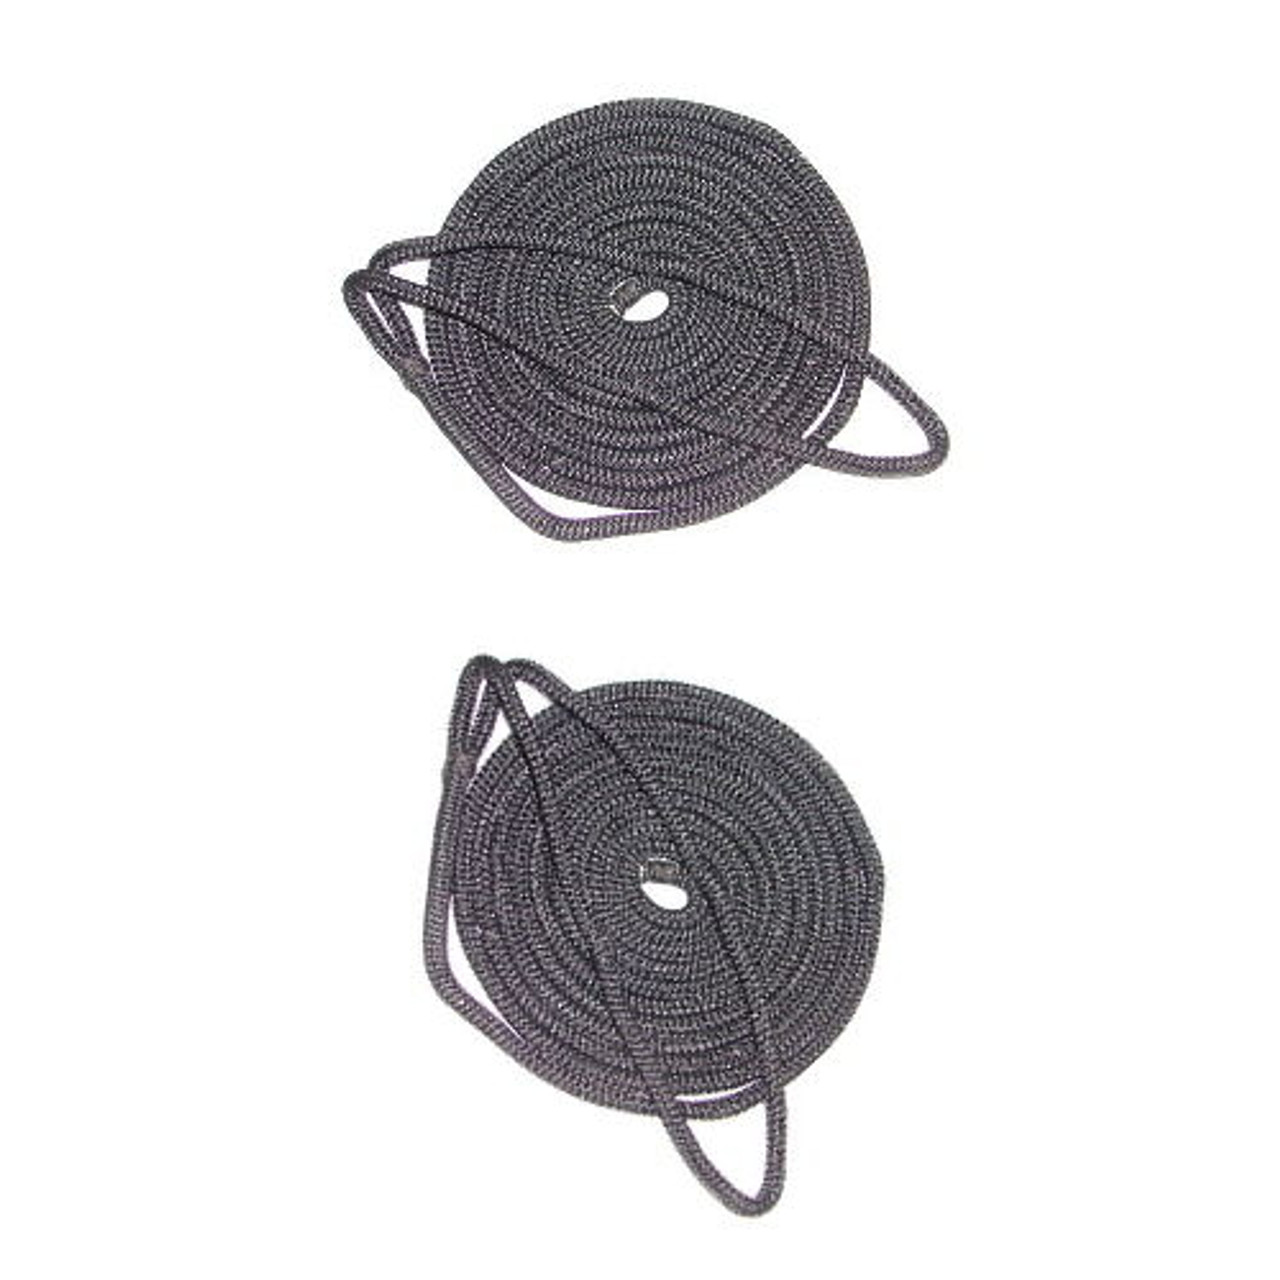 3//8 Inch x 25 Ft Black Double Braid Nylon Mooring and Docking Line for Boats